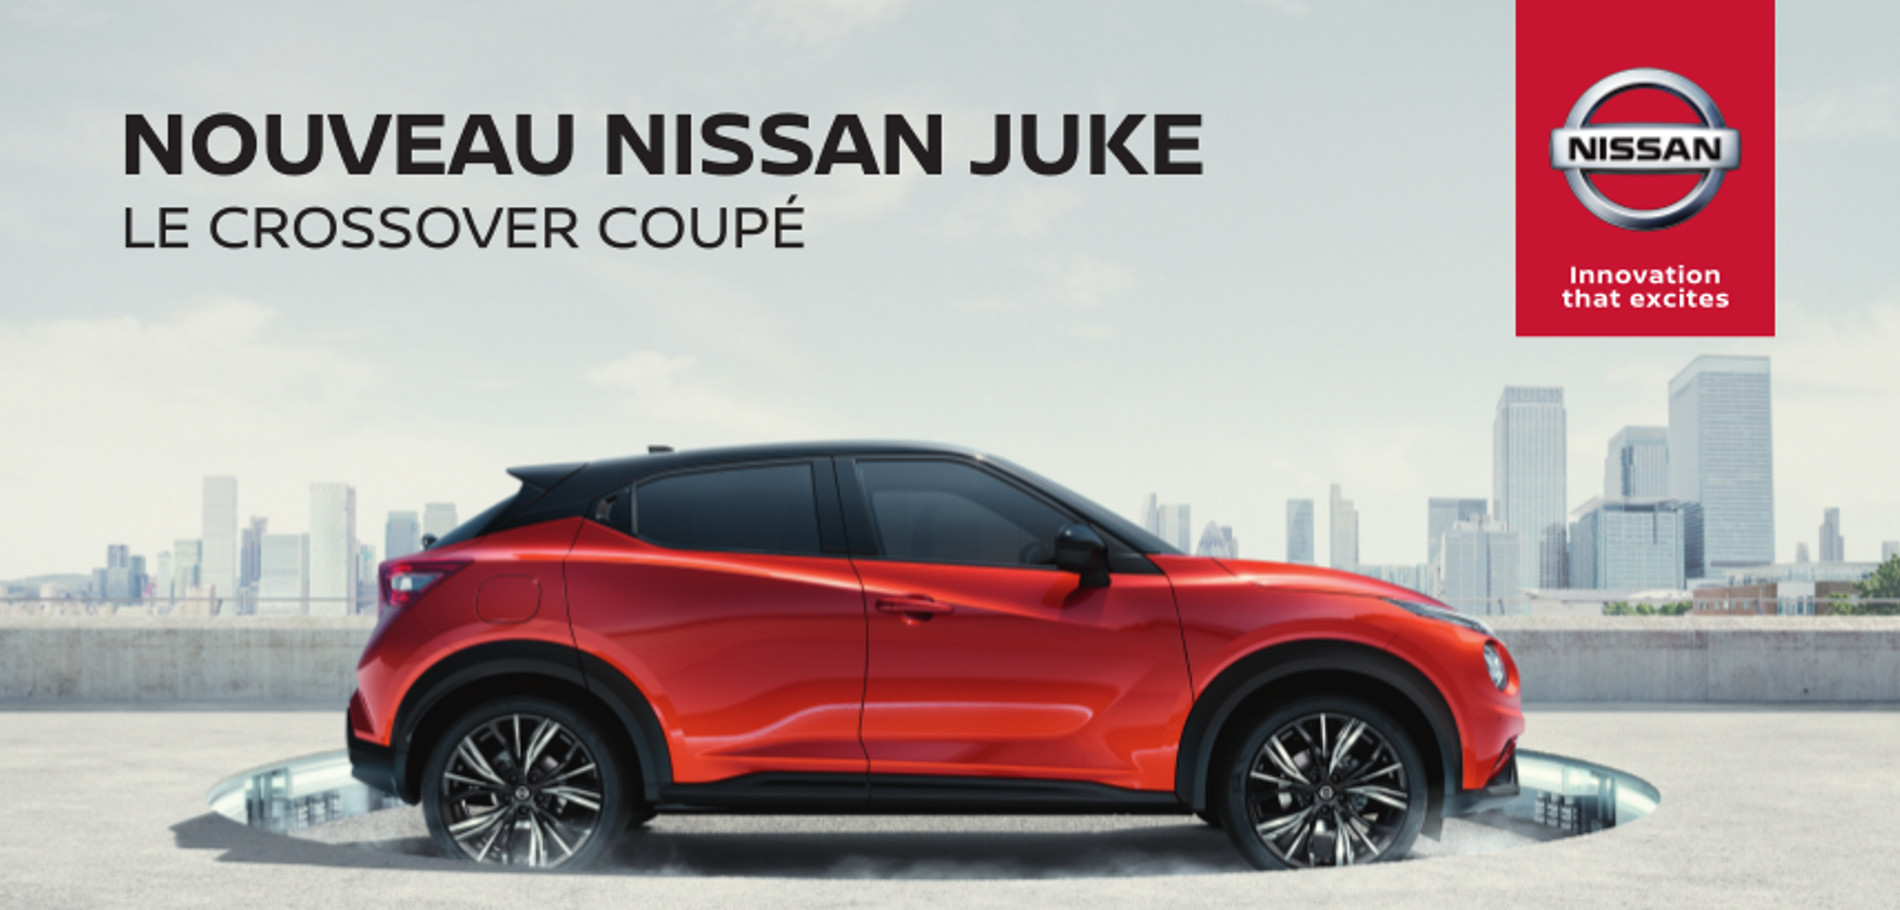 Concession NISSAN Muret